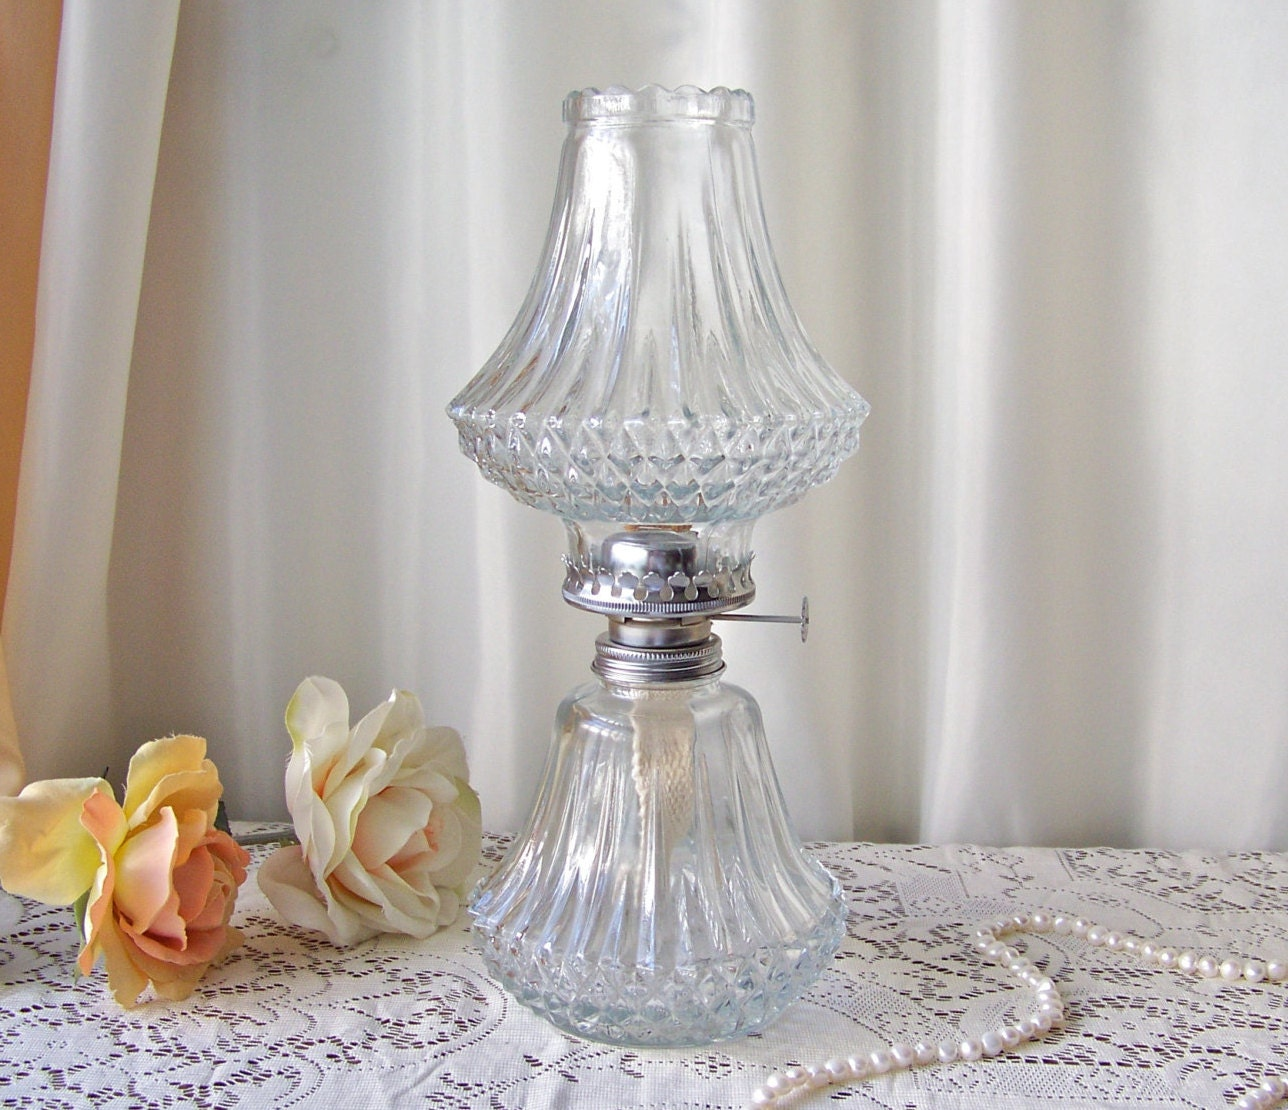 Vintage Oil Lamp Lamplight Farms Diamond Cut Oil Lamp